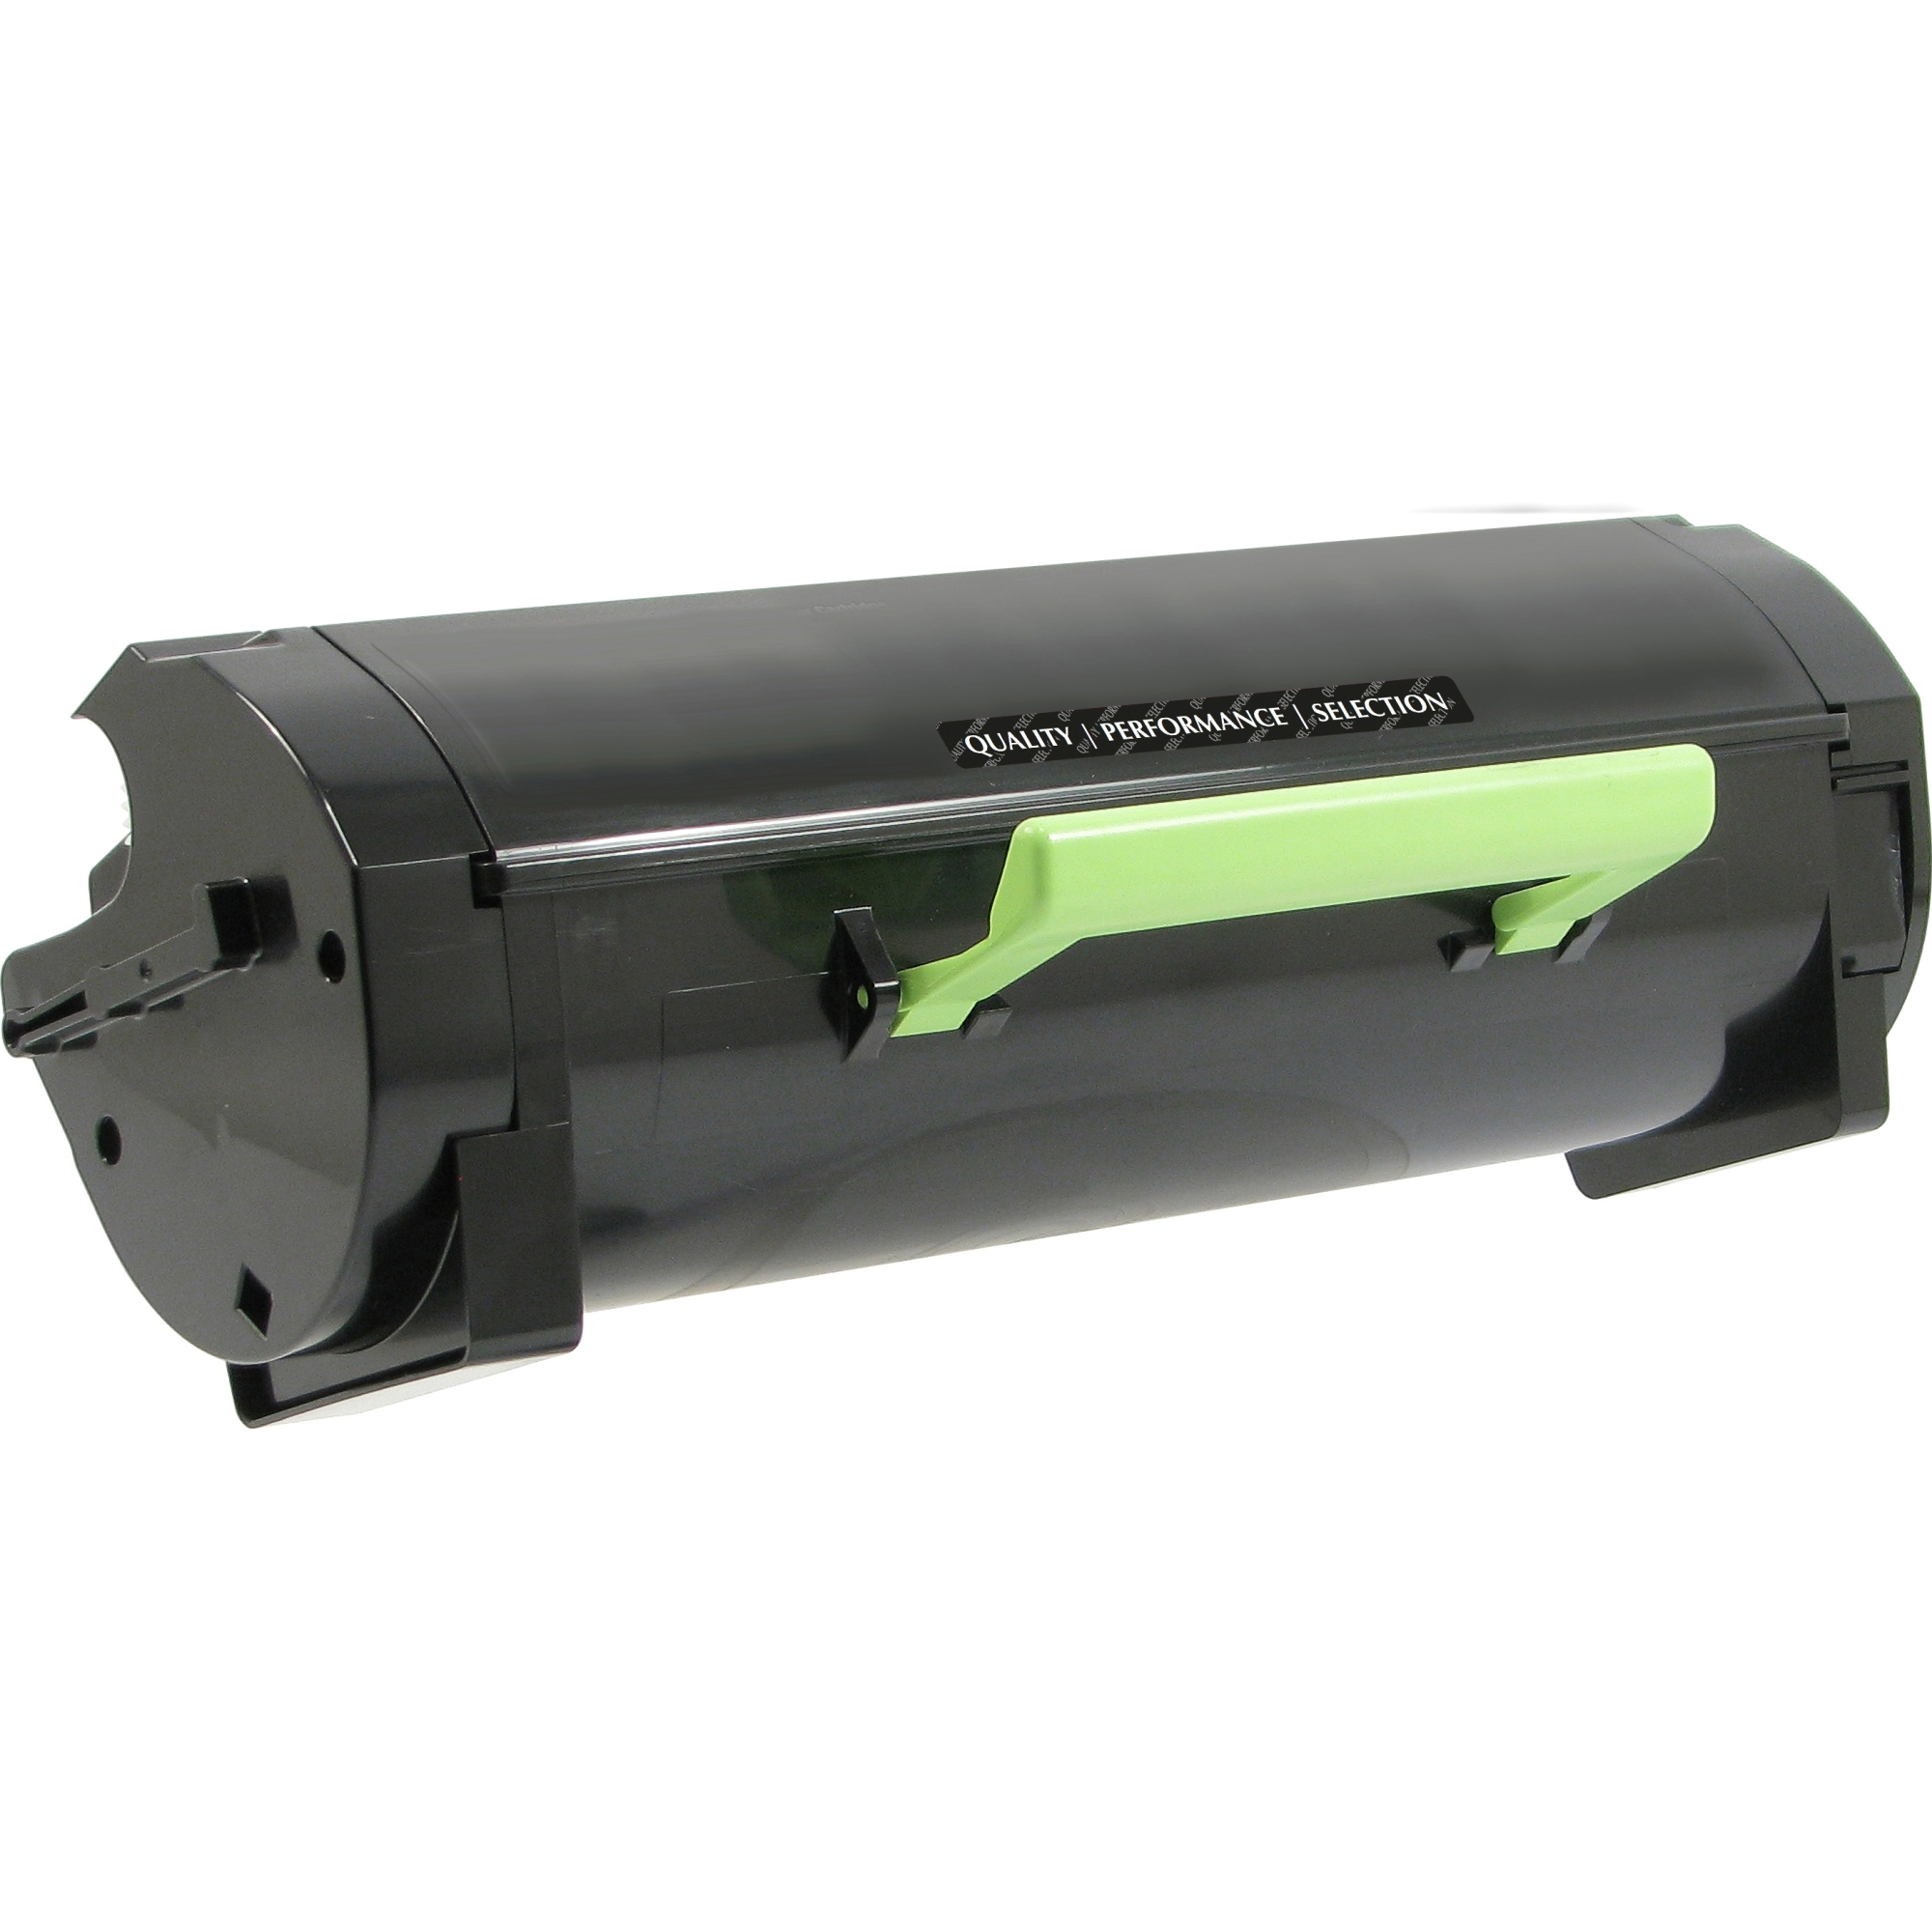 Toner Cartridge - Replacement for Lexmark (50F0HA0 50F1H00) - Black - Laser - High Yield - 5000 Page